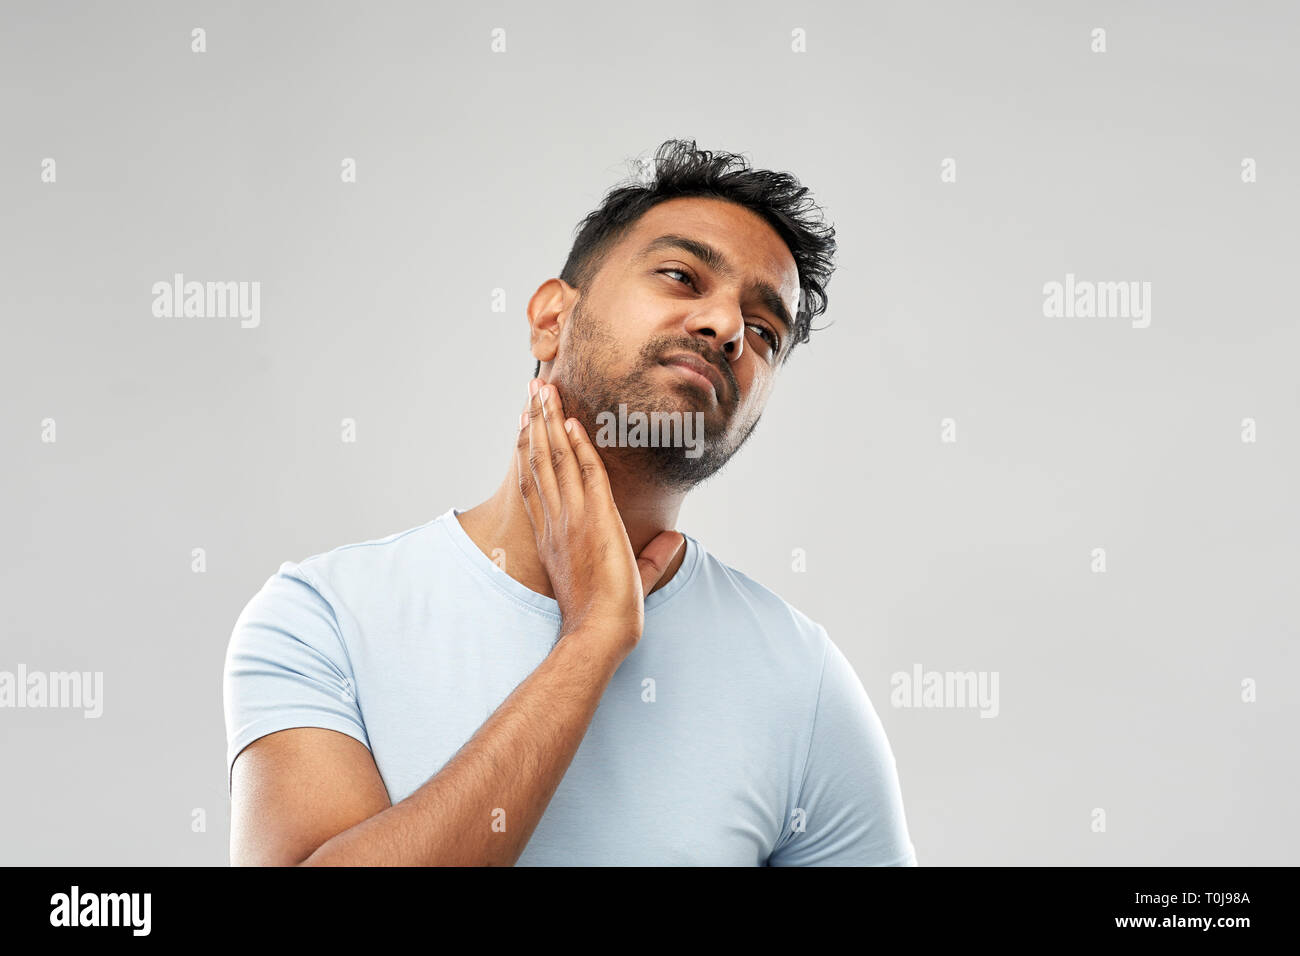 indian man suffering from sore glands or tonsils - Stock Image